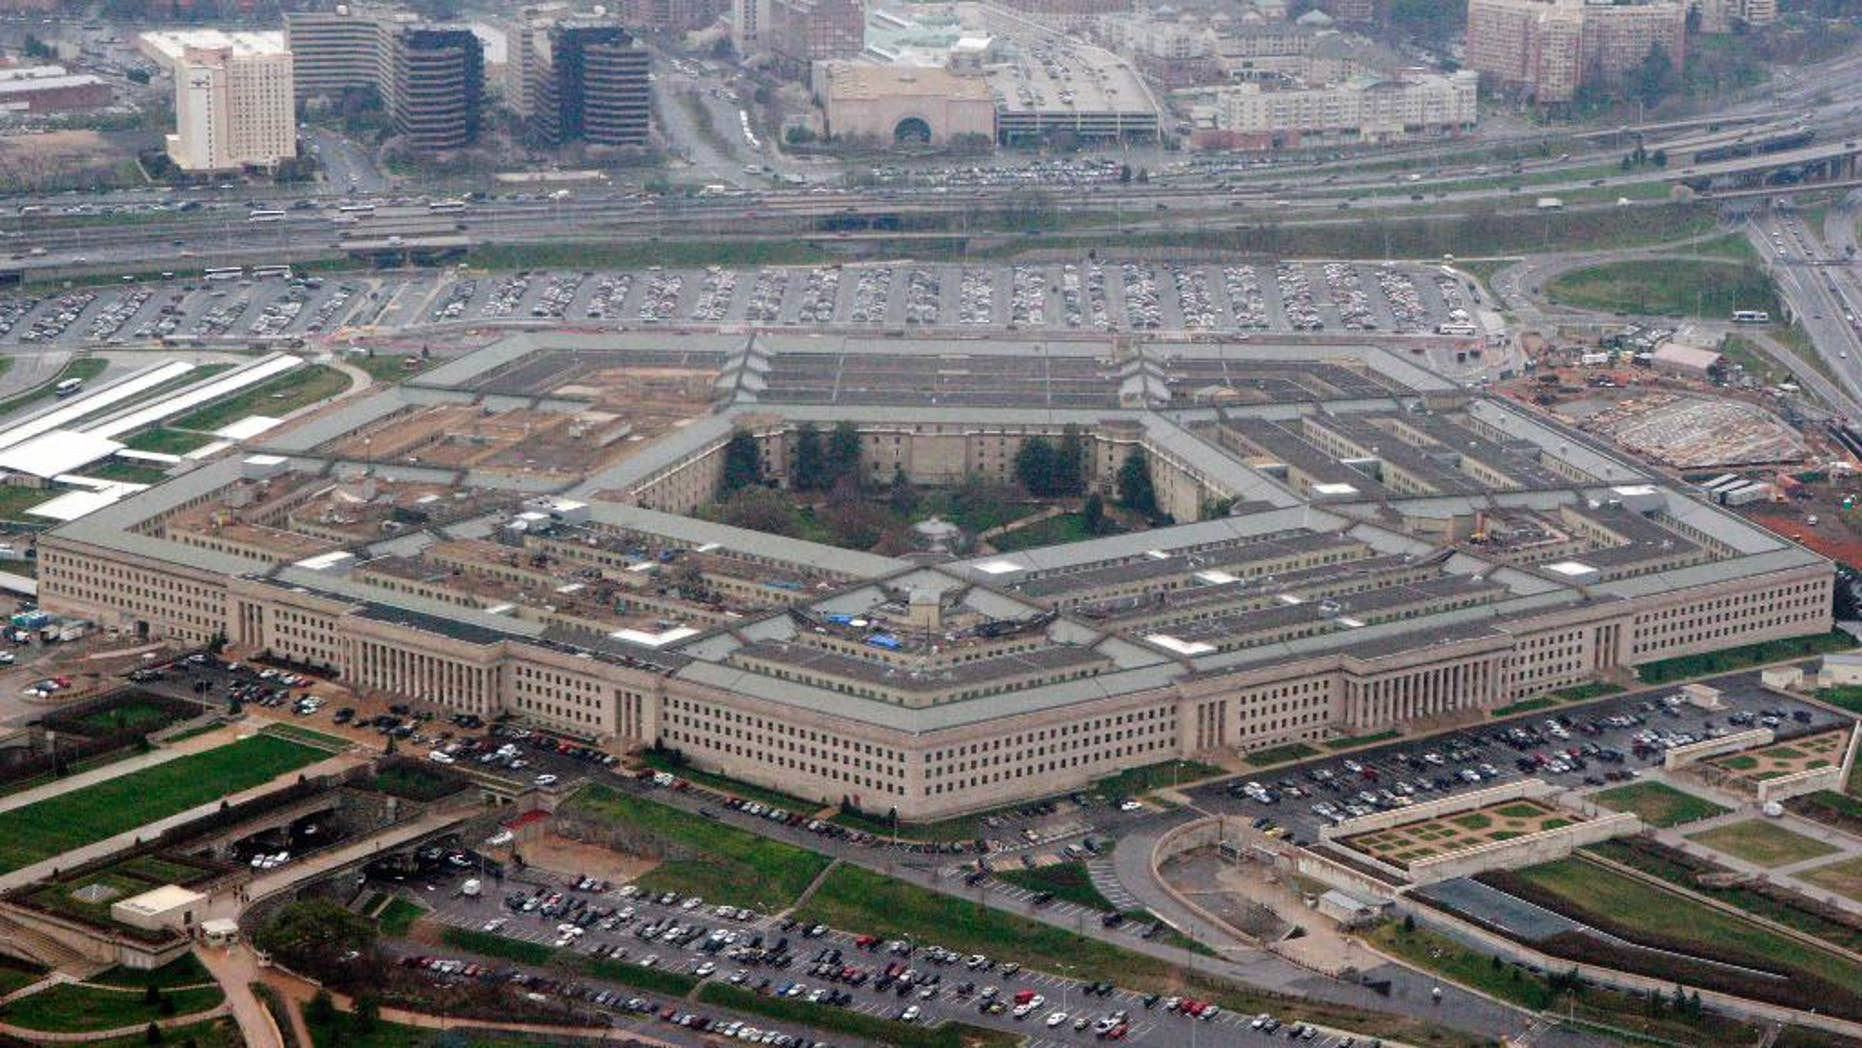 "FILE - The Pentagon is seen in this aerial view in Washington, in this March 27, 2008 file photo. The Pentagon has revised its Law of War guidelines to remove wording that could permit U.S. military commanders to treat war correspondents as ""unprivileged belligerents"" if they think the journalists are sympathizing or cooperating with enemy forces. The amended manual, published on July 22, 2016, also drops wording that equated journalism with spying. (AP Photo/Charles Dharapak, File)"